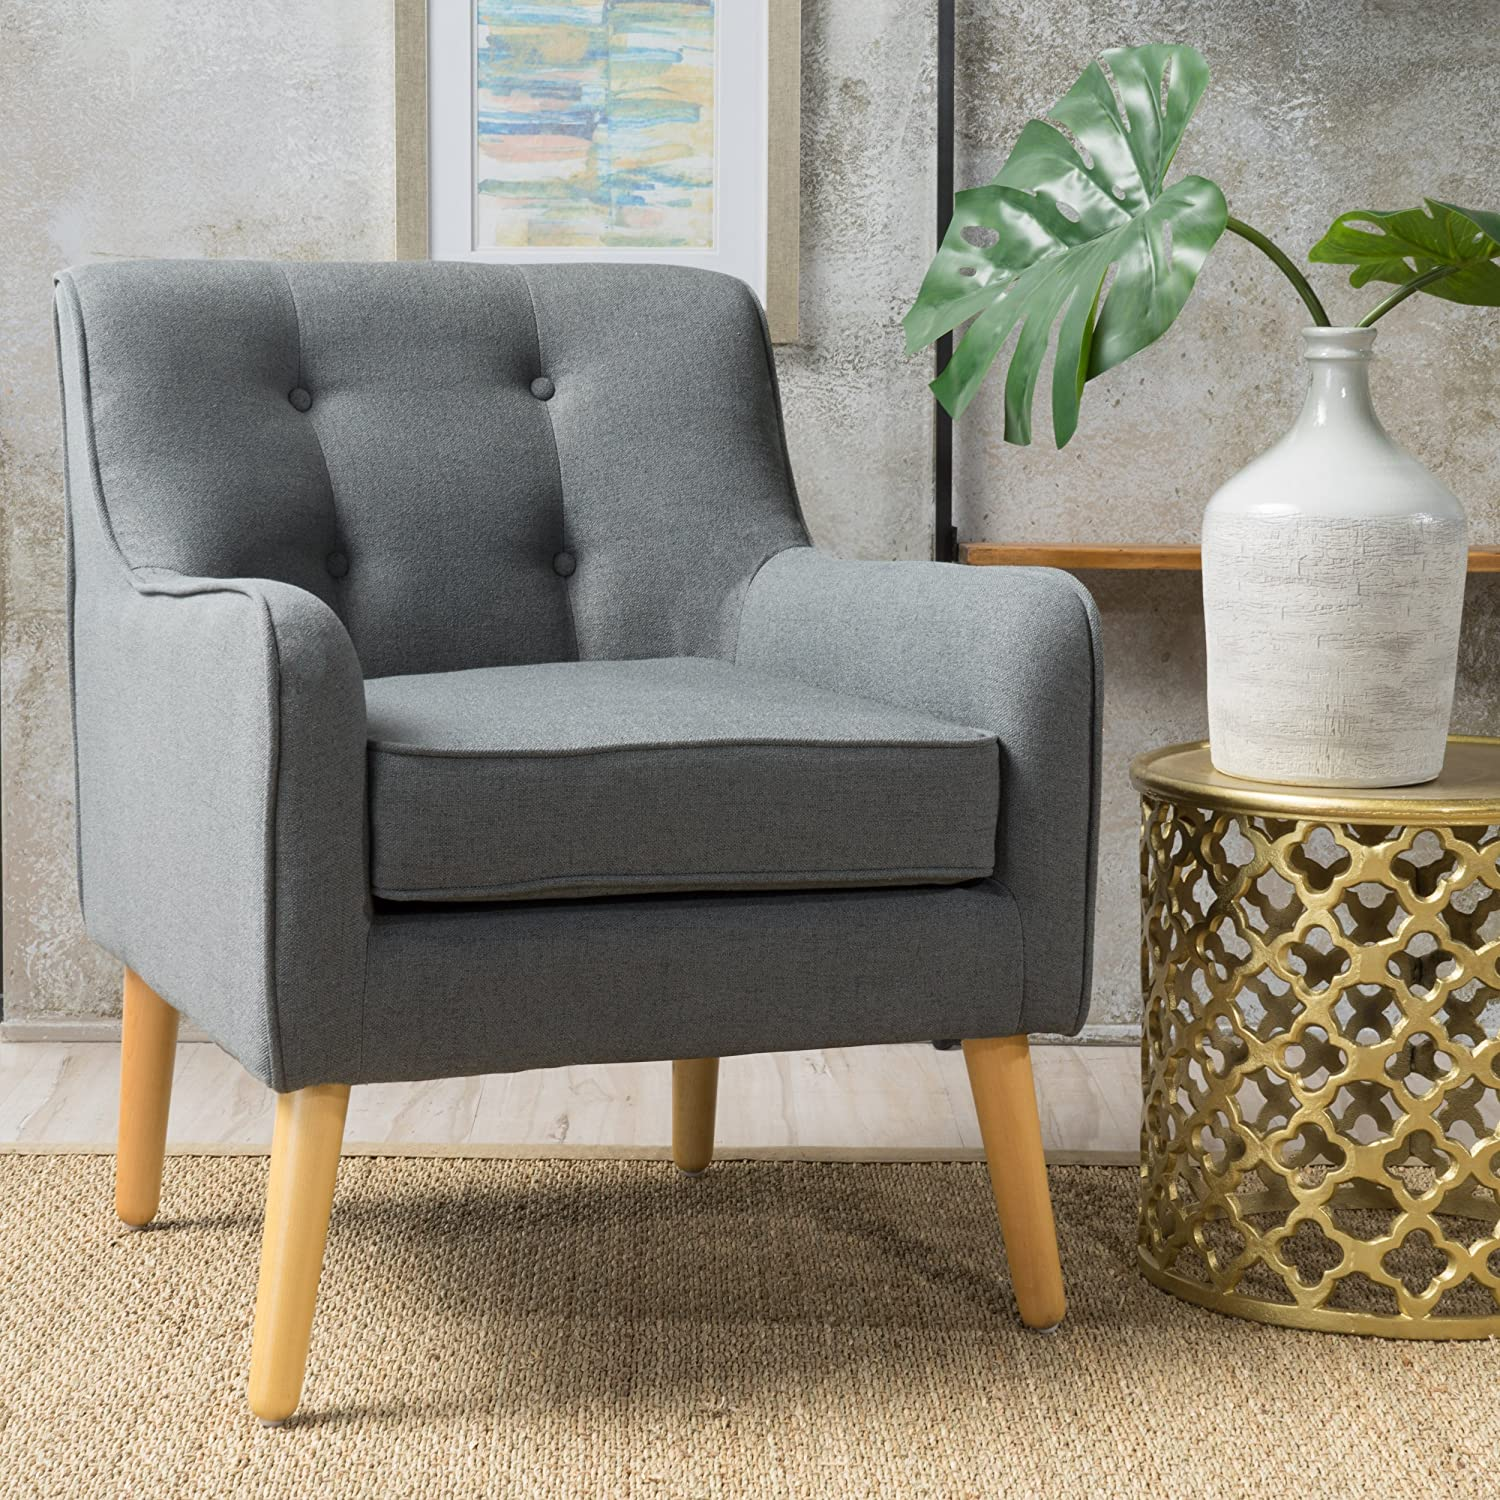 Christopher Knight Home 300567 Felicity Arm Chair, Charcoal